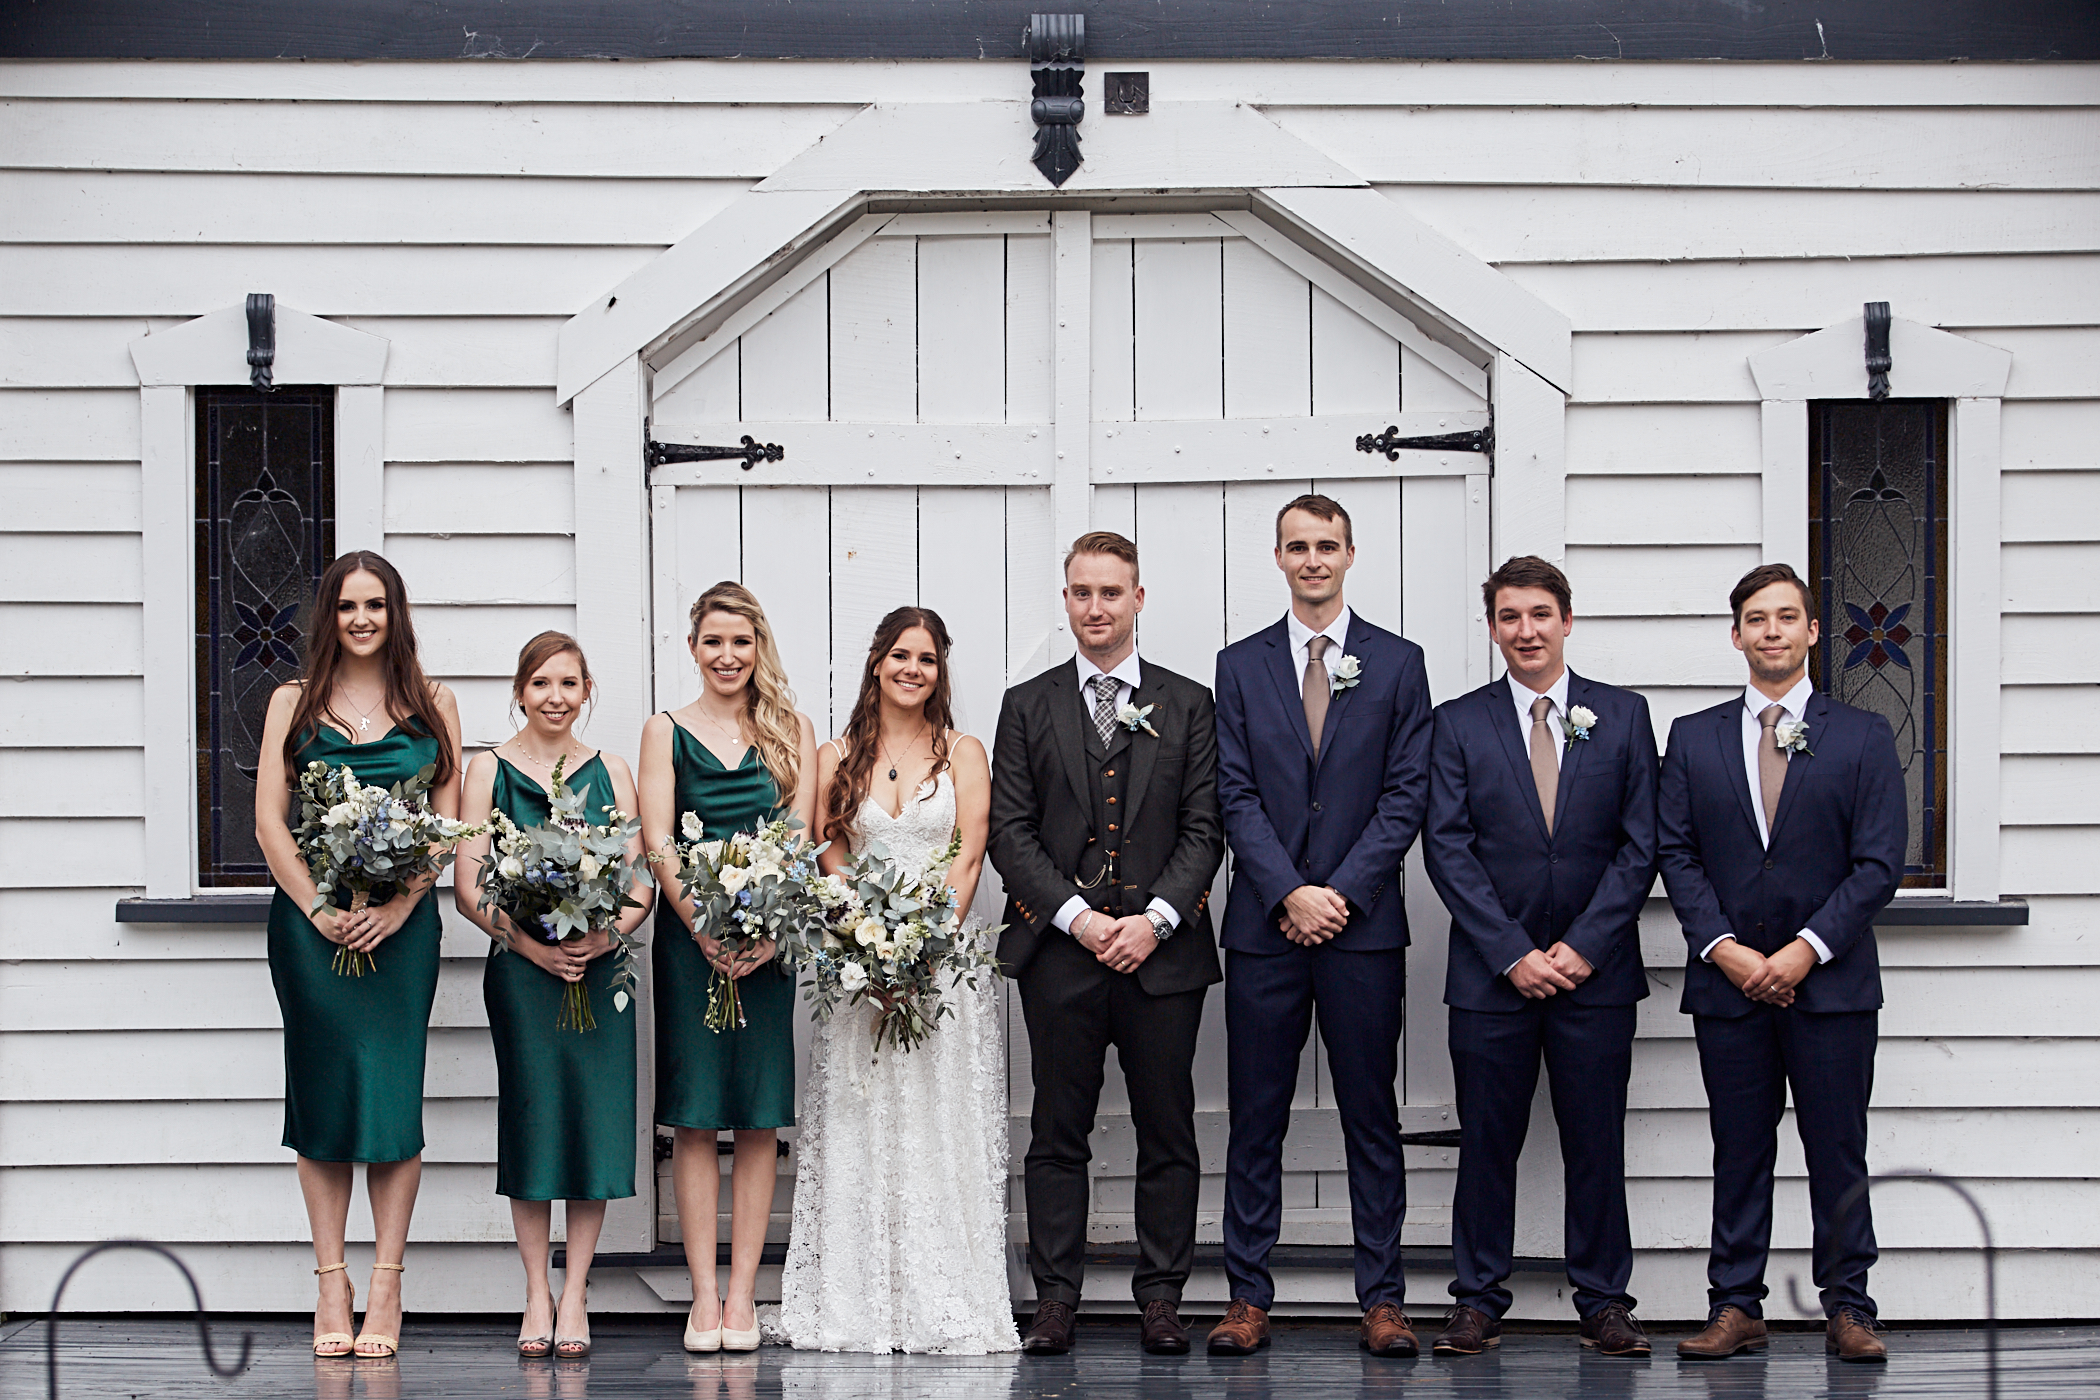 The wedding party posing for photo